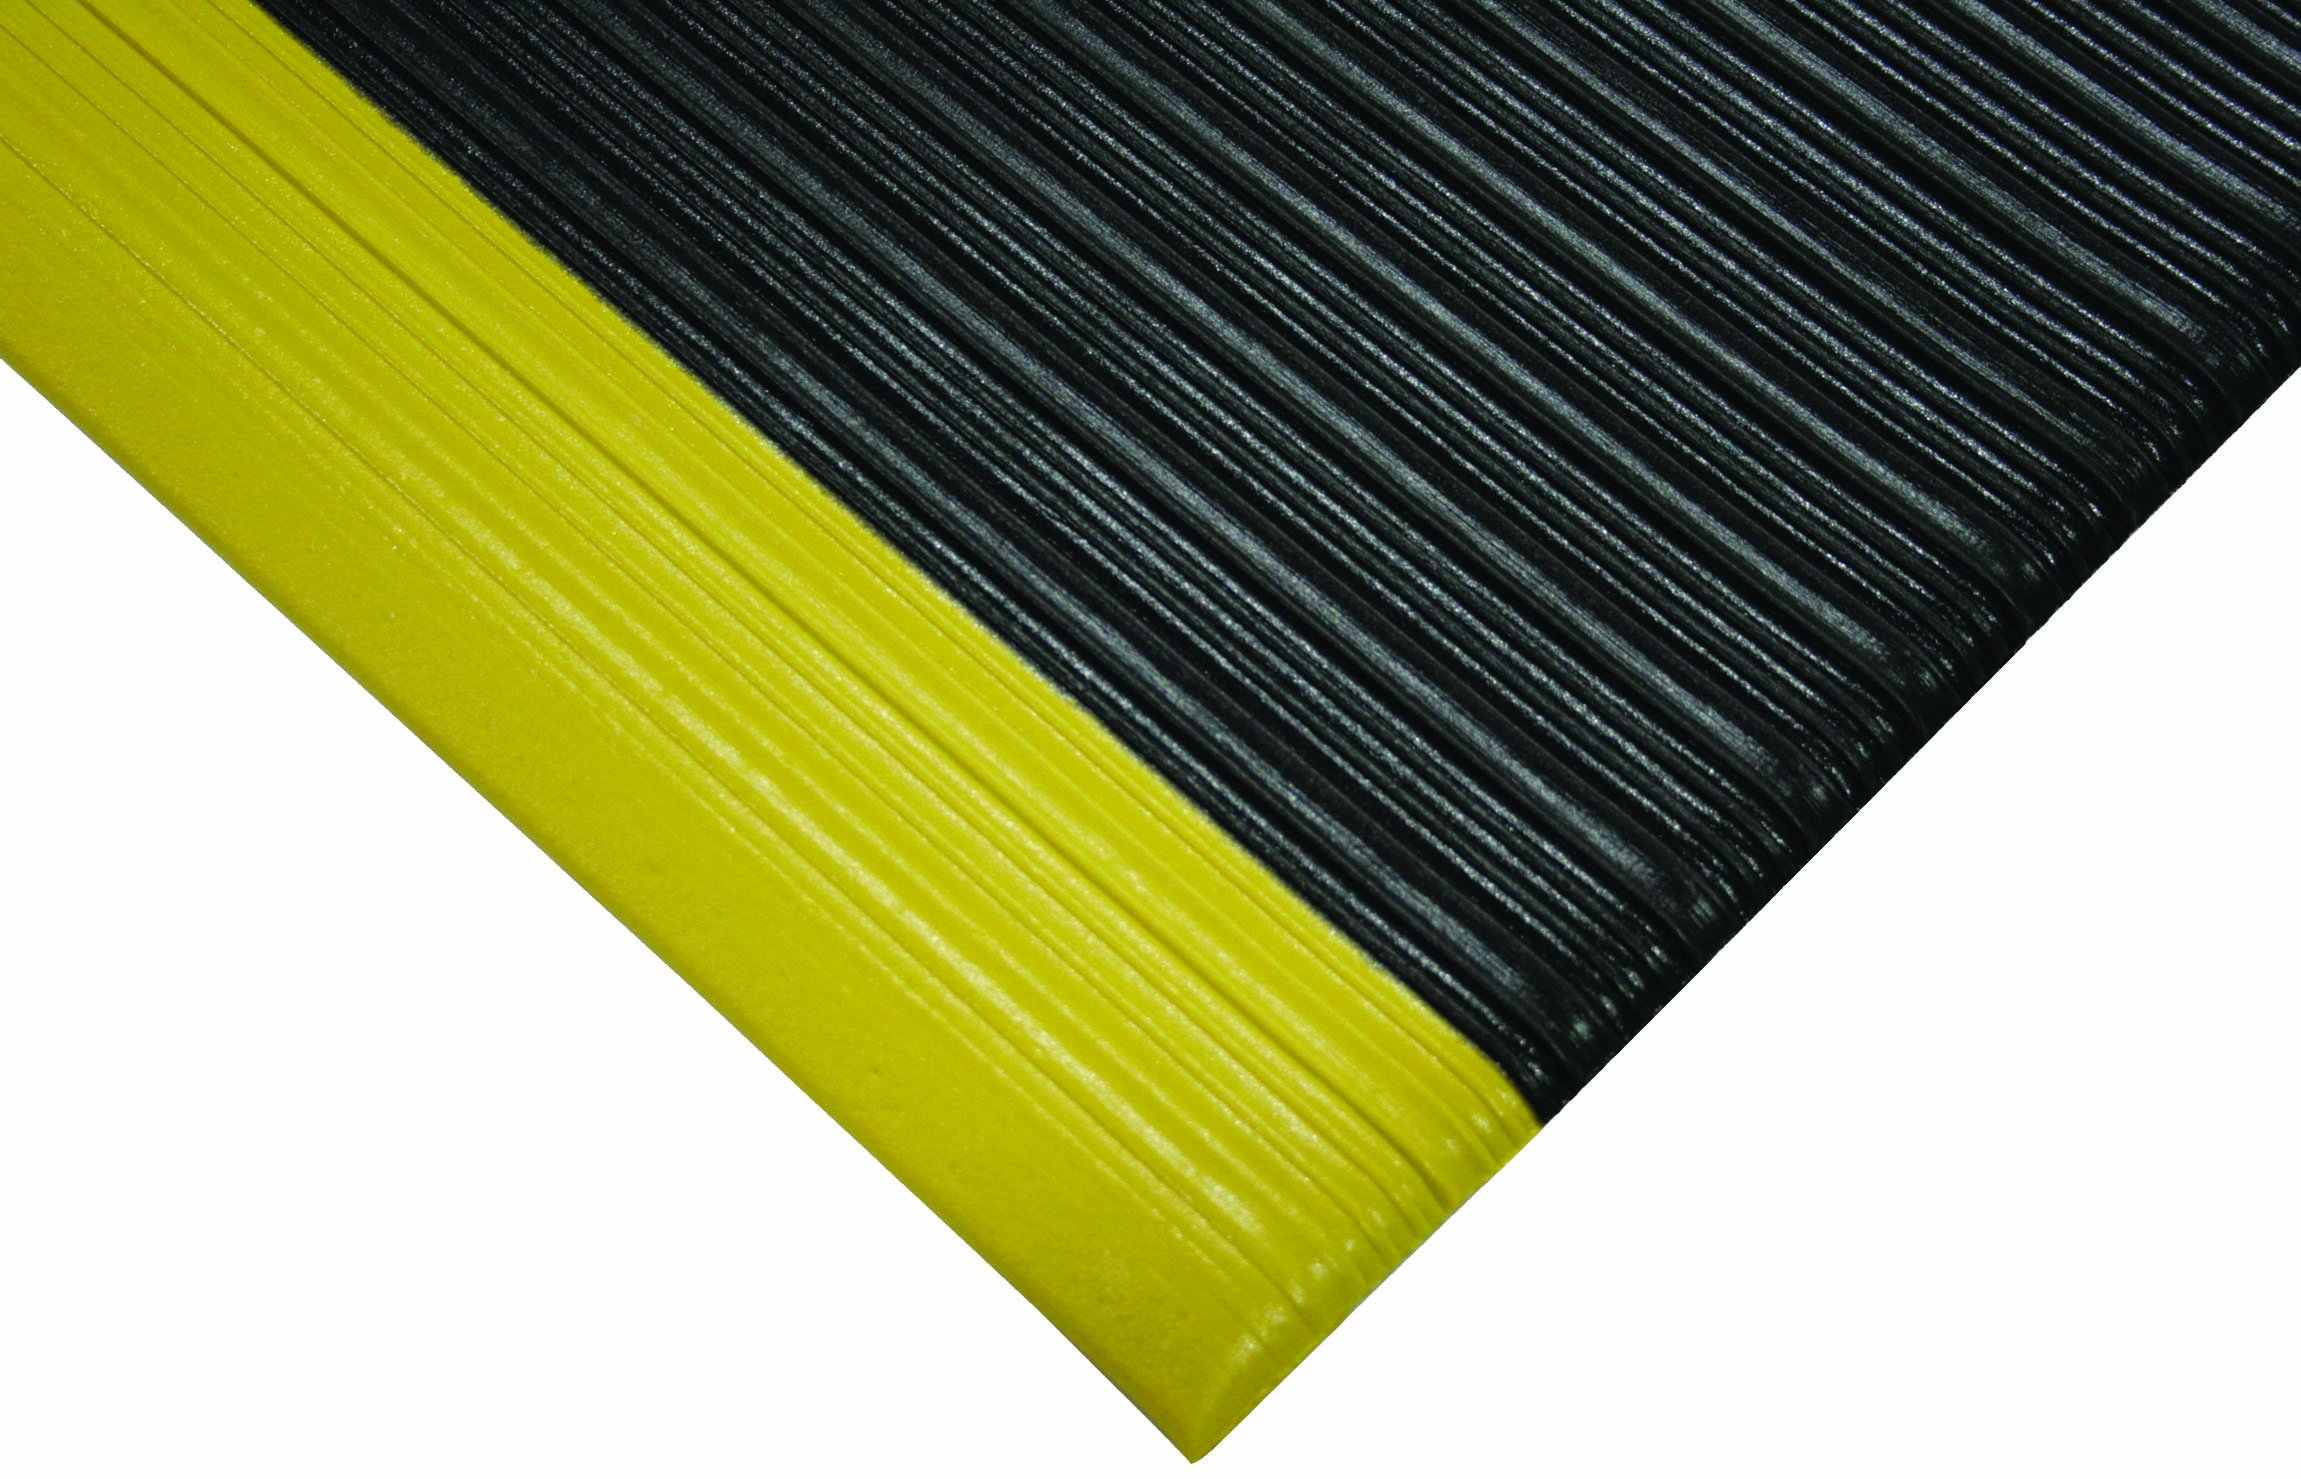 Wearwell PVC 451 Tuf Sponge Light Duty Anti-Fatigue Mat, for Dry Areas, 3' Width x 12' Length x 3/8'' Thickness, Black / Yellow